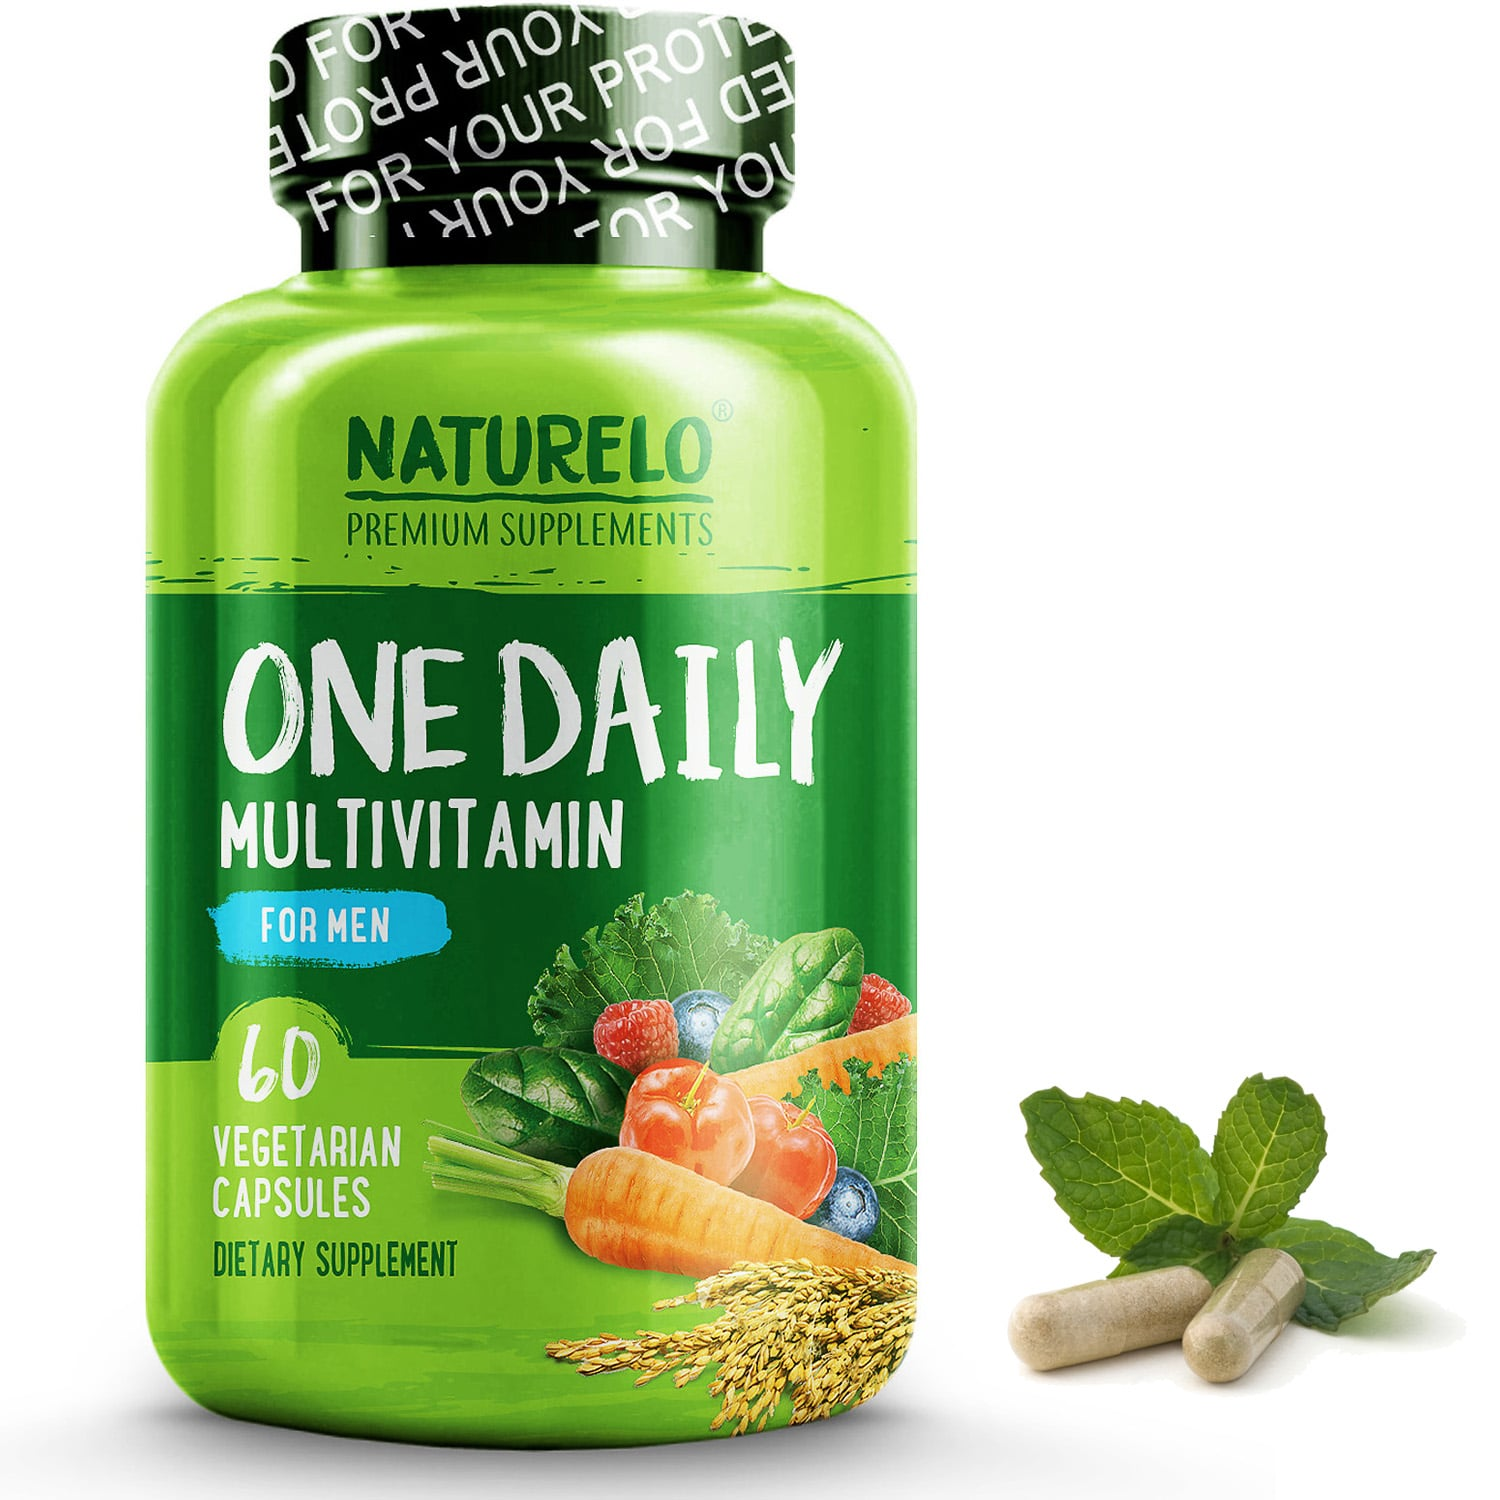 One Daily Multivitamin for Men - 60 Capsules   2 Month Supply